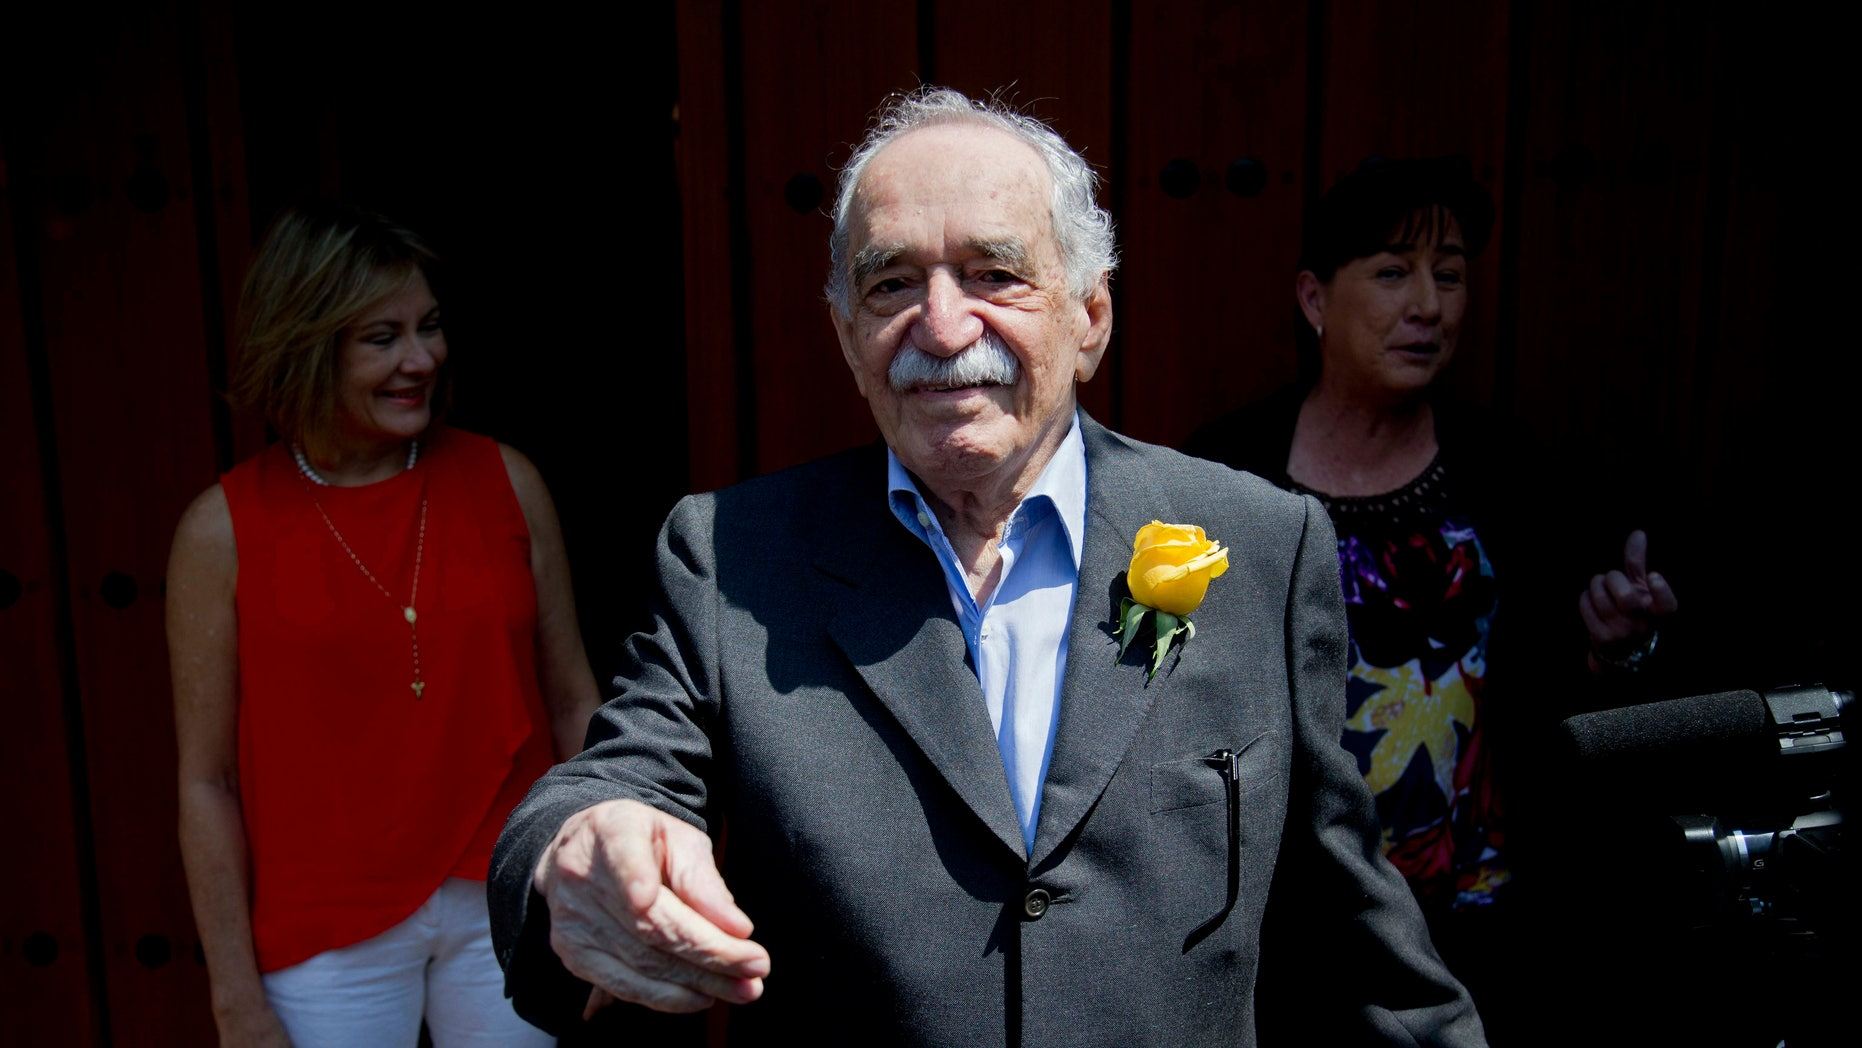 """Colombian Nobel Literature laureate Gabriel Garcia Marquez greets fans and reporters outside his home on his birthday in Mexico City, Thursday, March 6, 2014. Garcia Marquez, known as """"Gabo"""" in Latin America, turned 87 on Thursday. (AP Photo/Eduardo Verdugo)"""